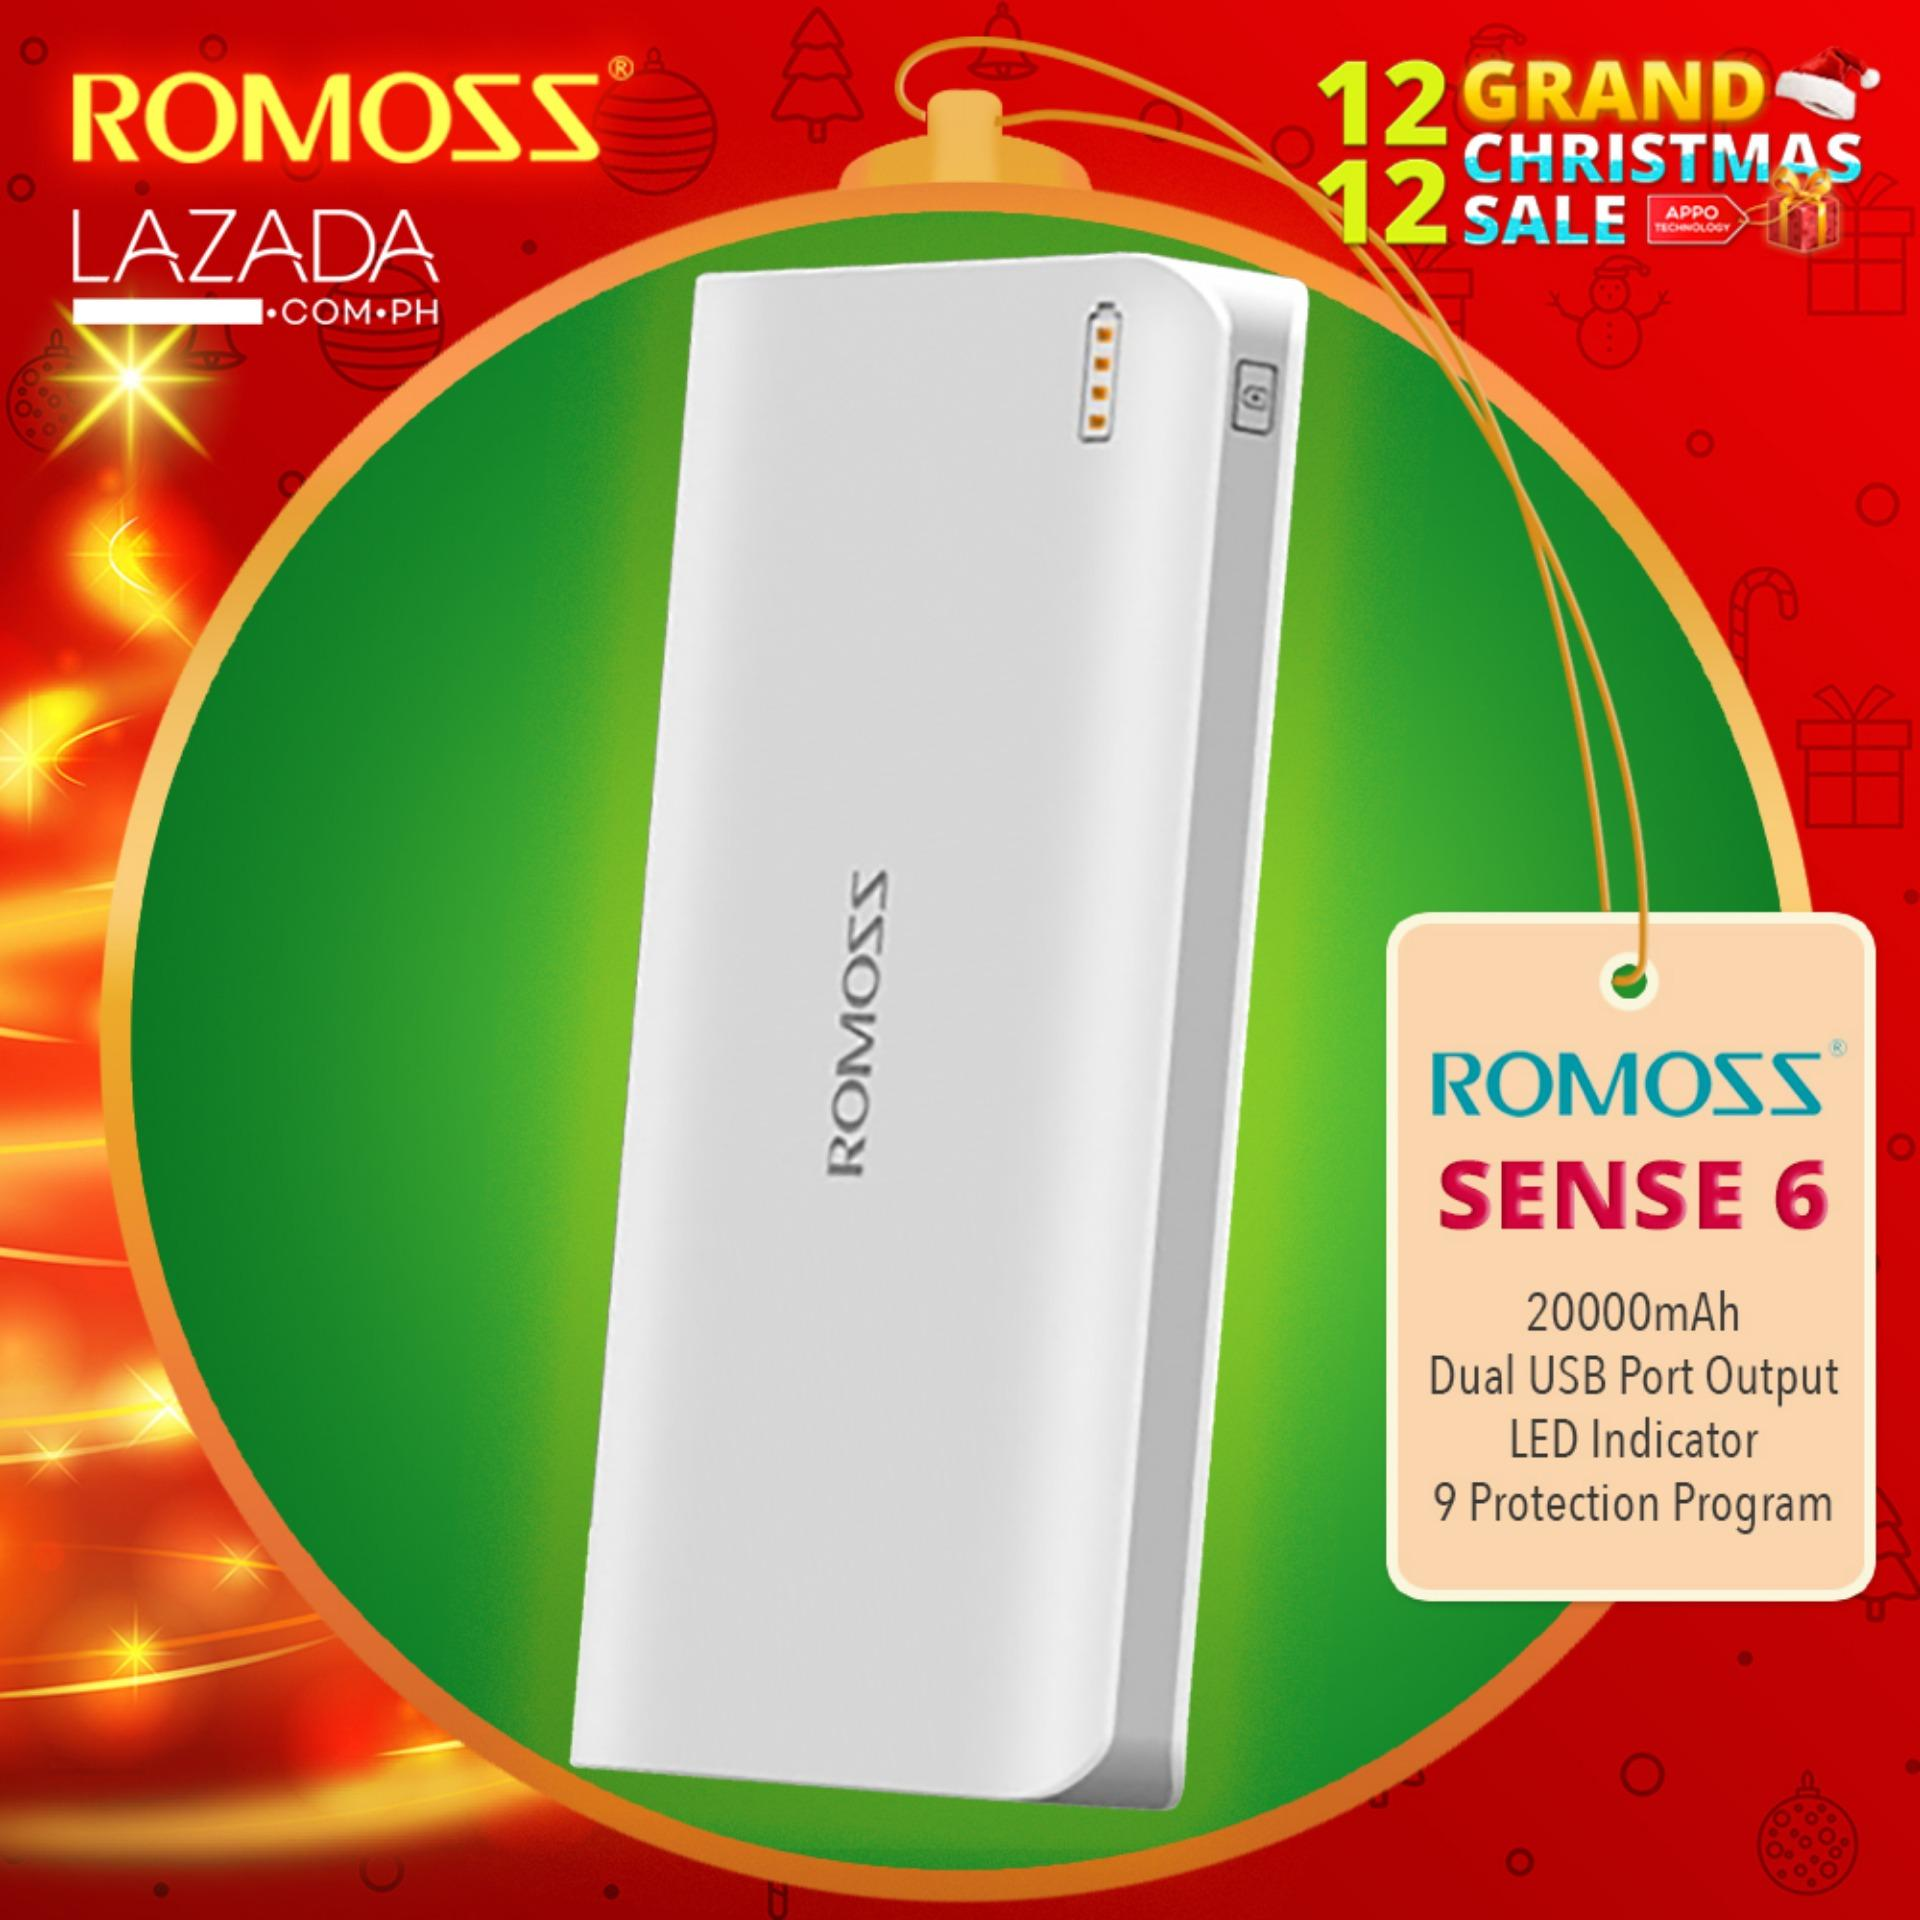 Super Li ion Power Bank Capsule Ii 22000mah Putih List Black Source · Romoss Sense 6